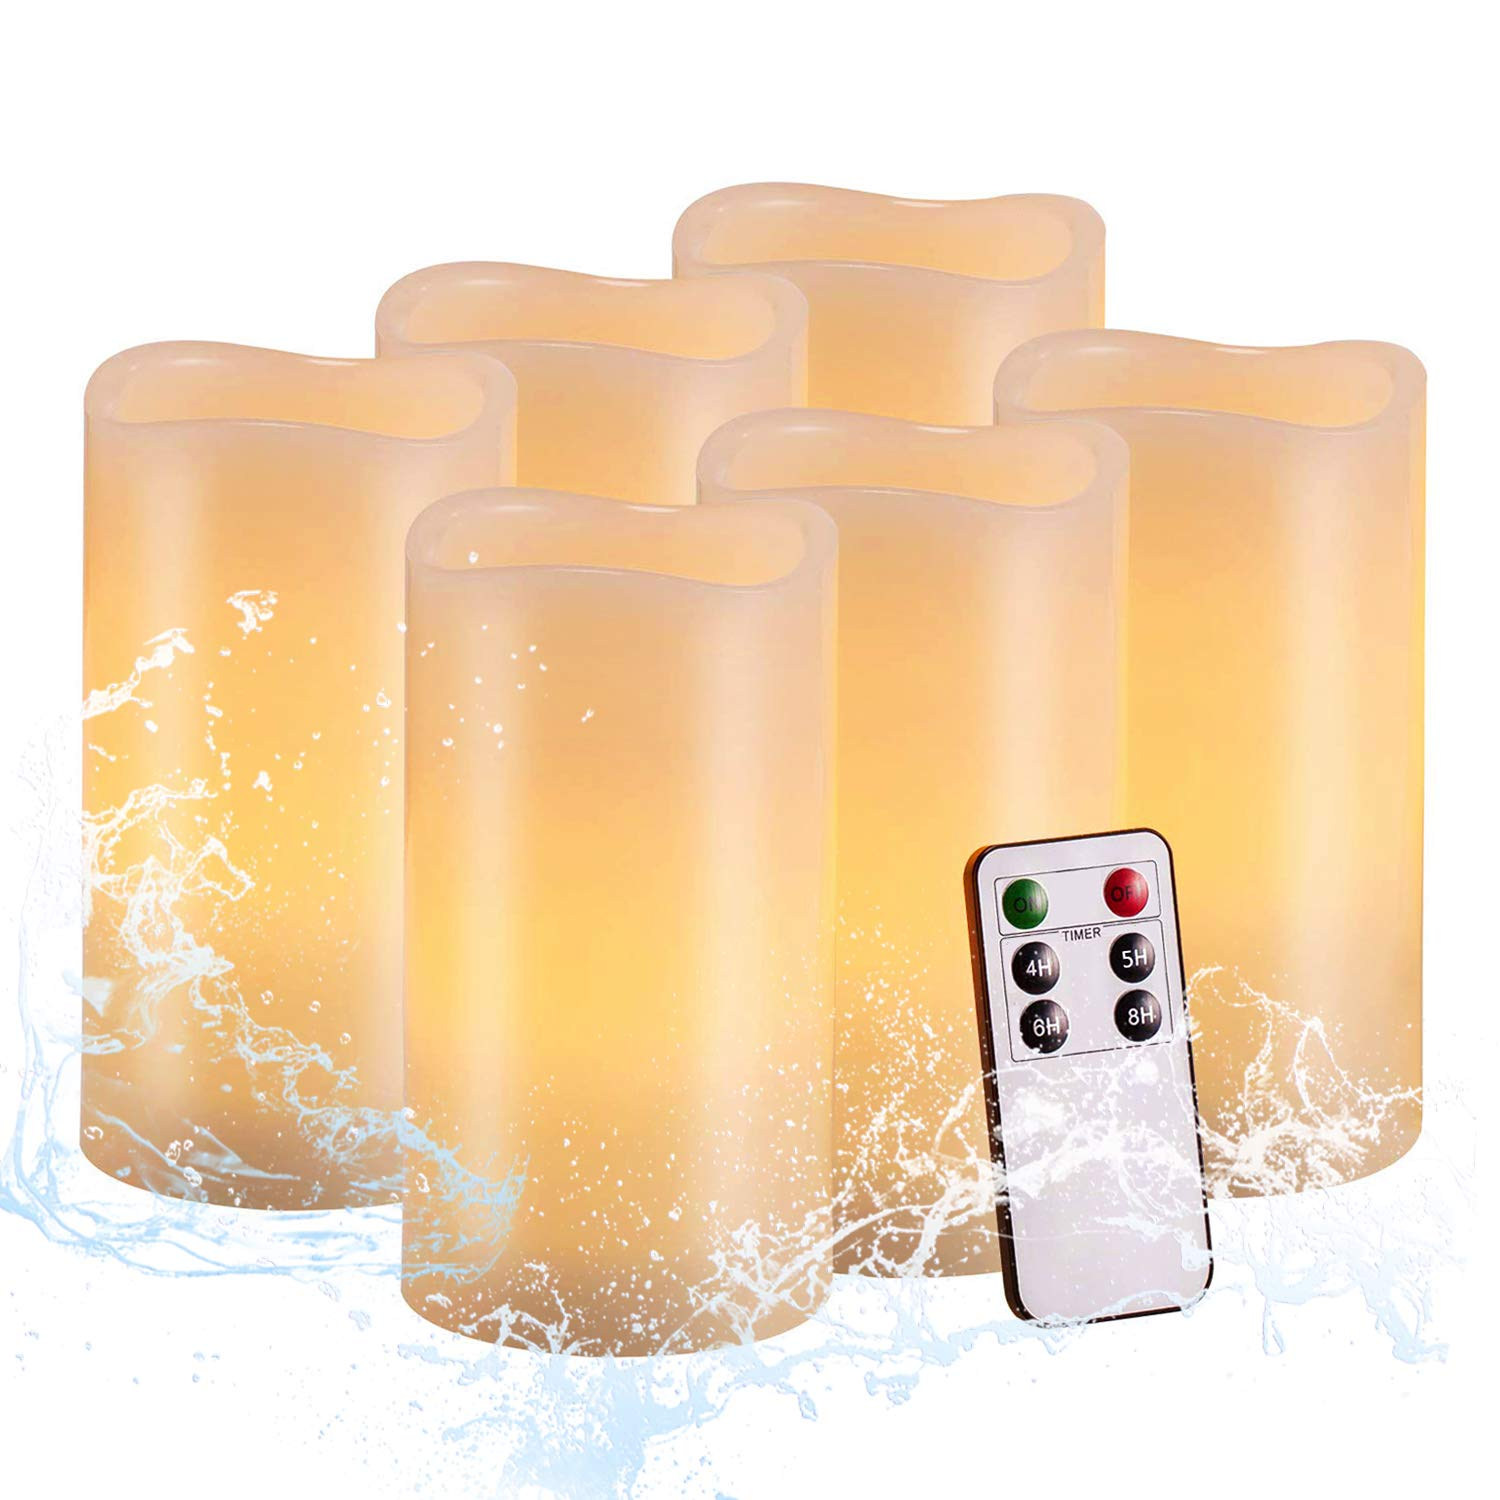 """Flameless Outdoor Waterproof Candles Battery Operated Pillar Real Wax Flickering Electric LED Candle Sets with Remote Control Cycling 24 Hours Timer by Aku Tonpa, 3""""x6"""" Pack of 6"""